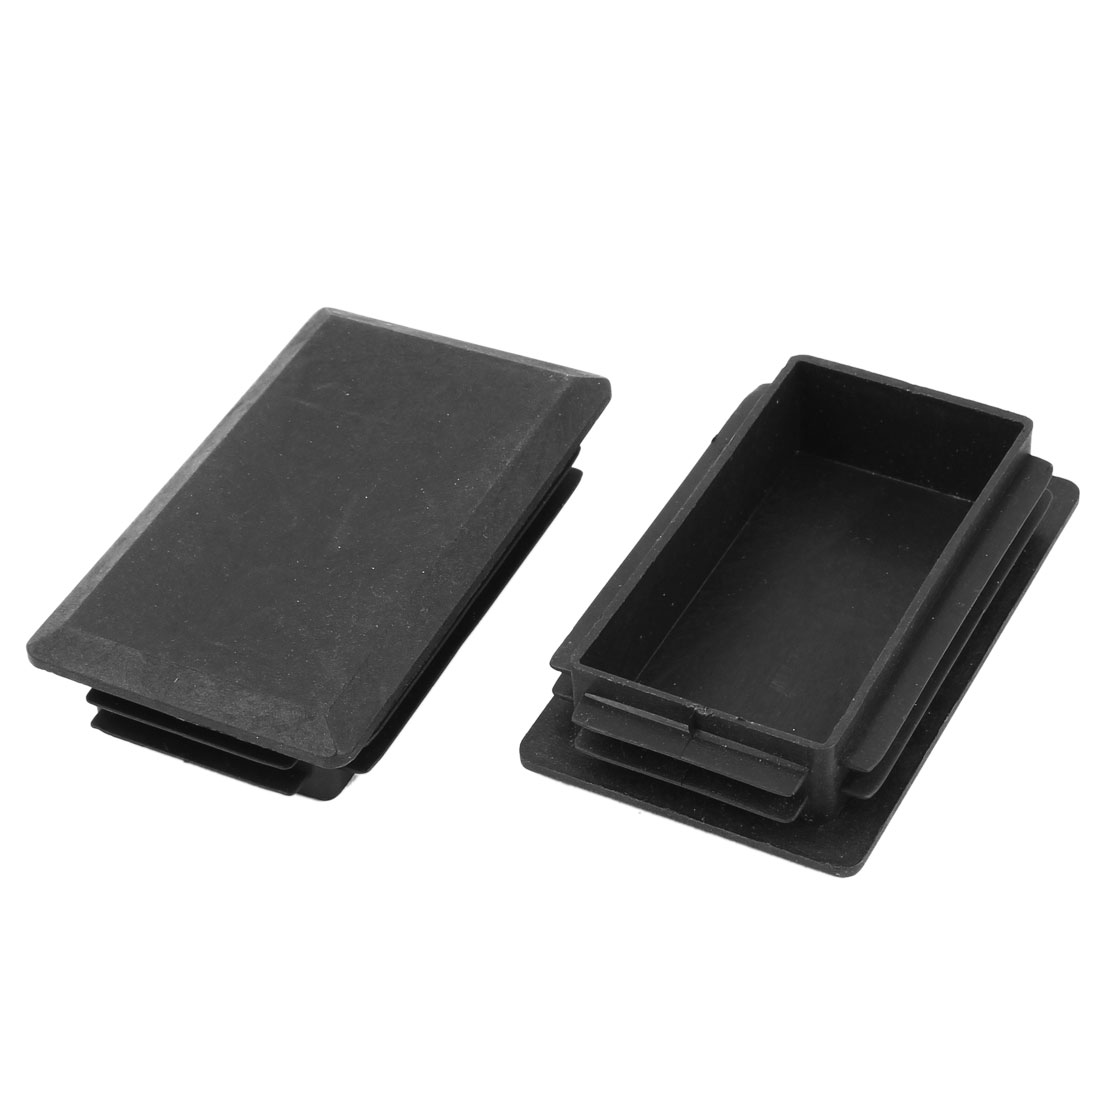 2 Pieces Black Plastic Rectangle Blanking End Caps Tubing Tube Inserts 60mm x 100mm